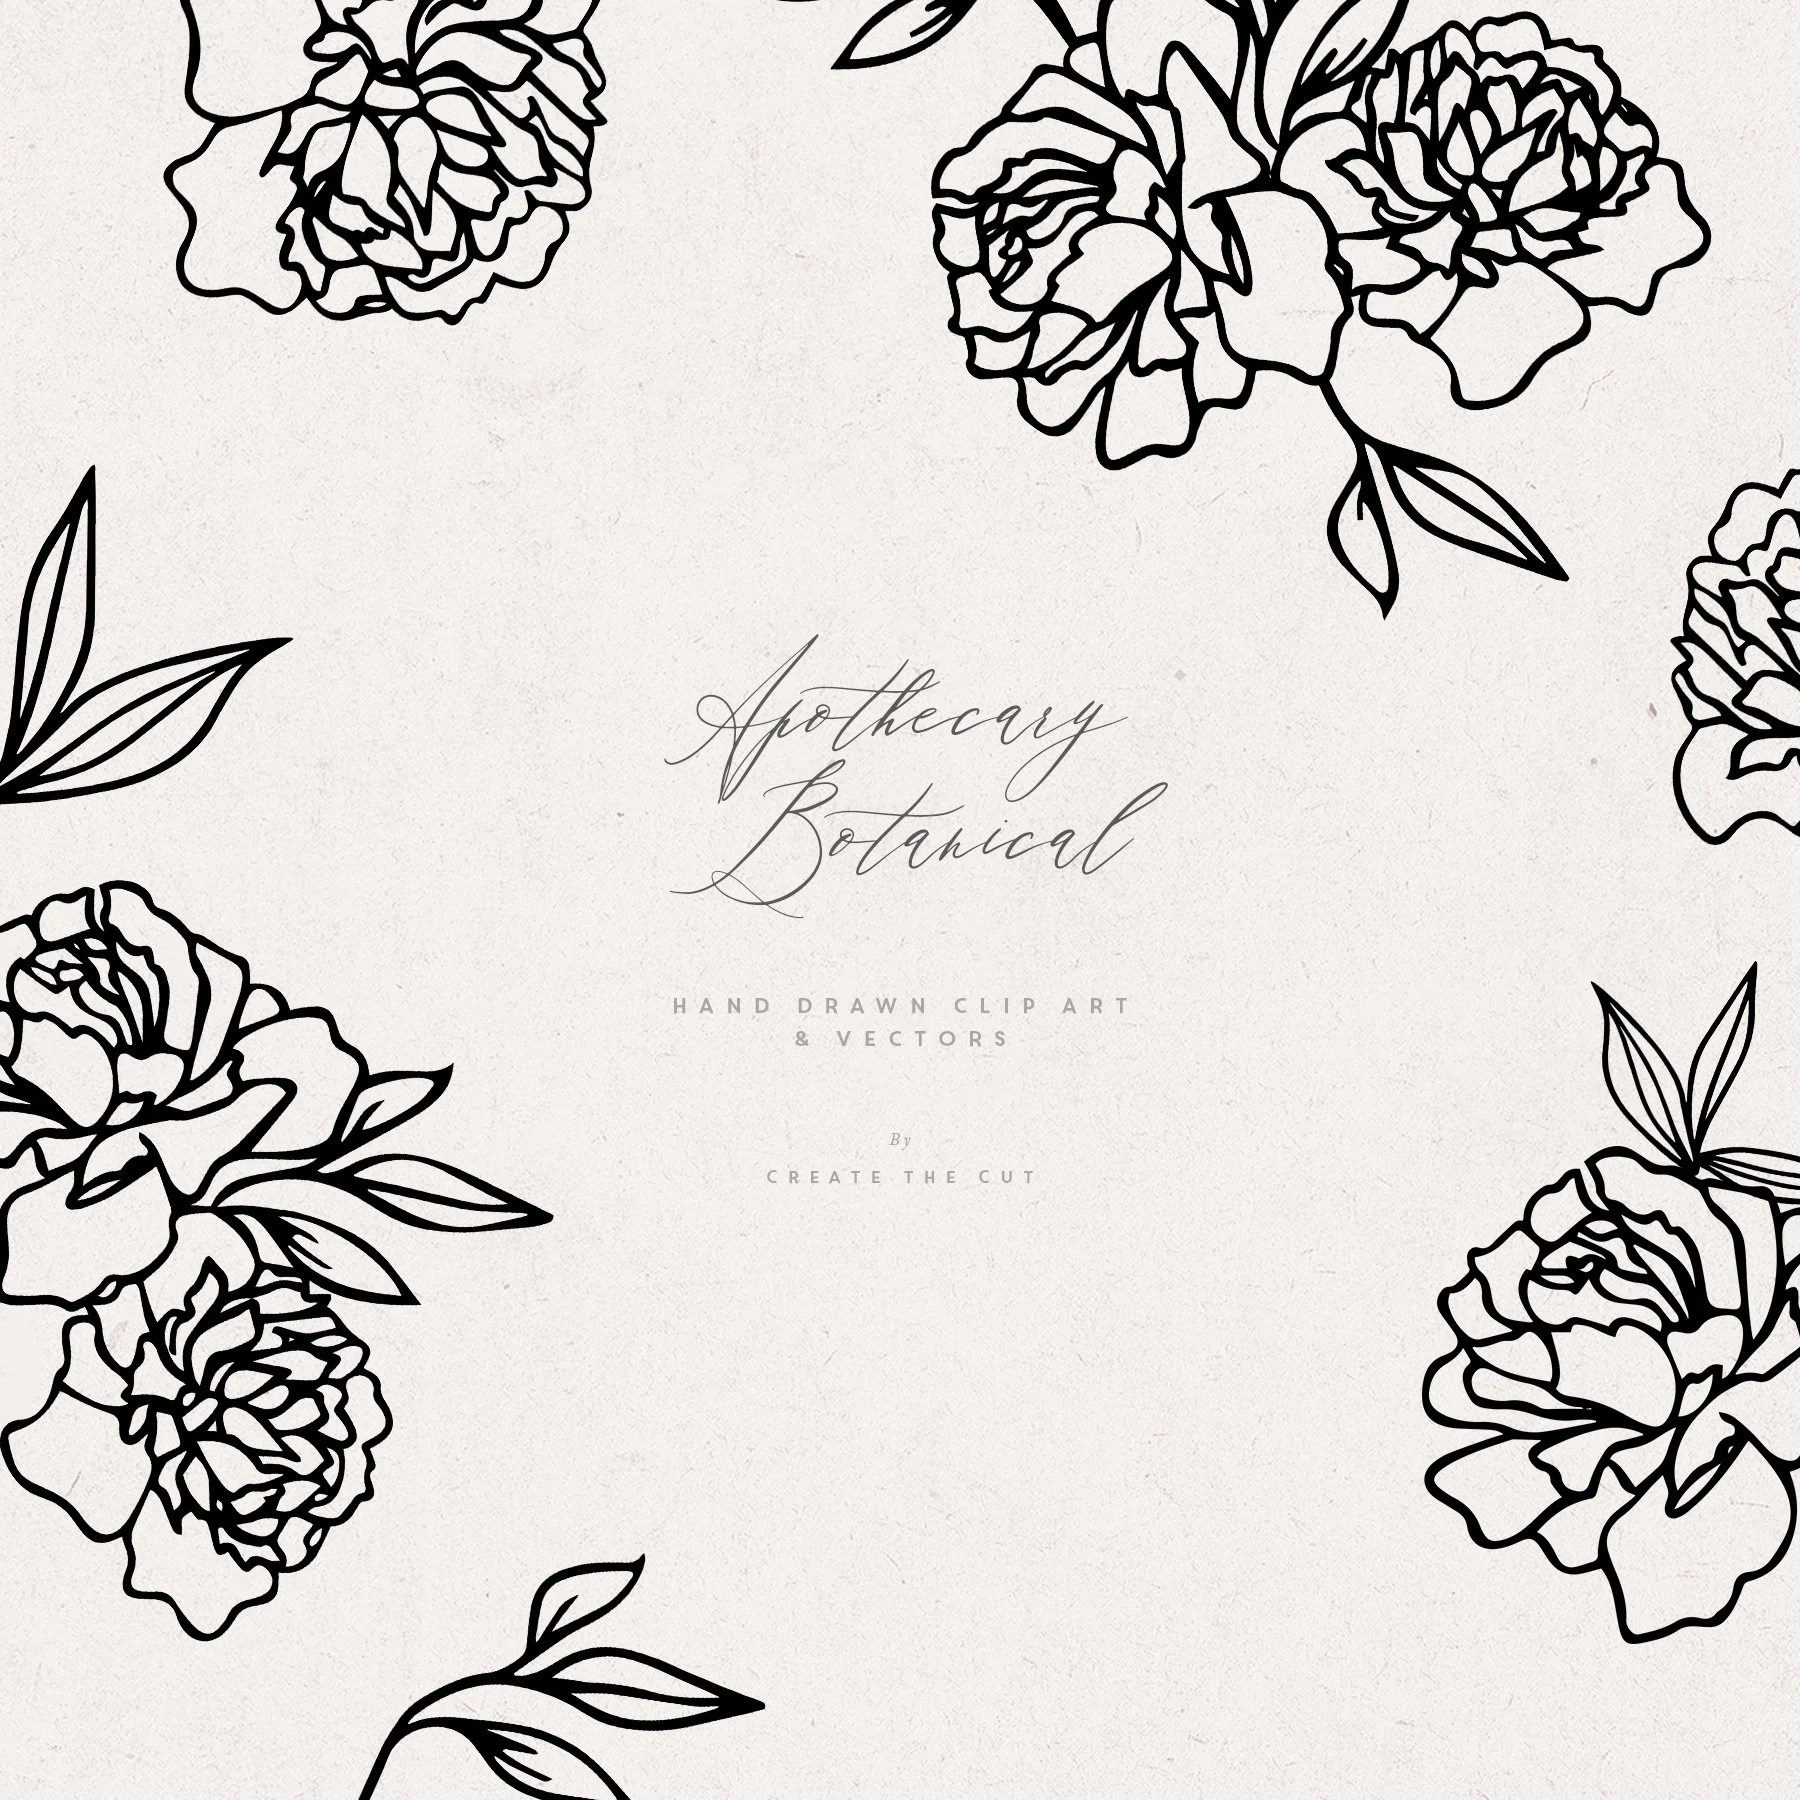 Apothecary Botanical Line Clip Art And Vectors